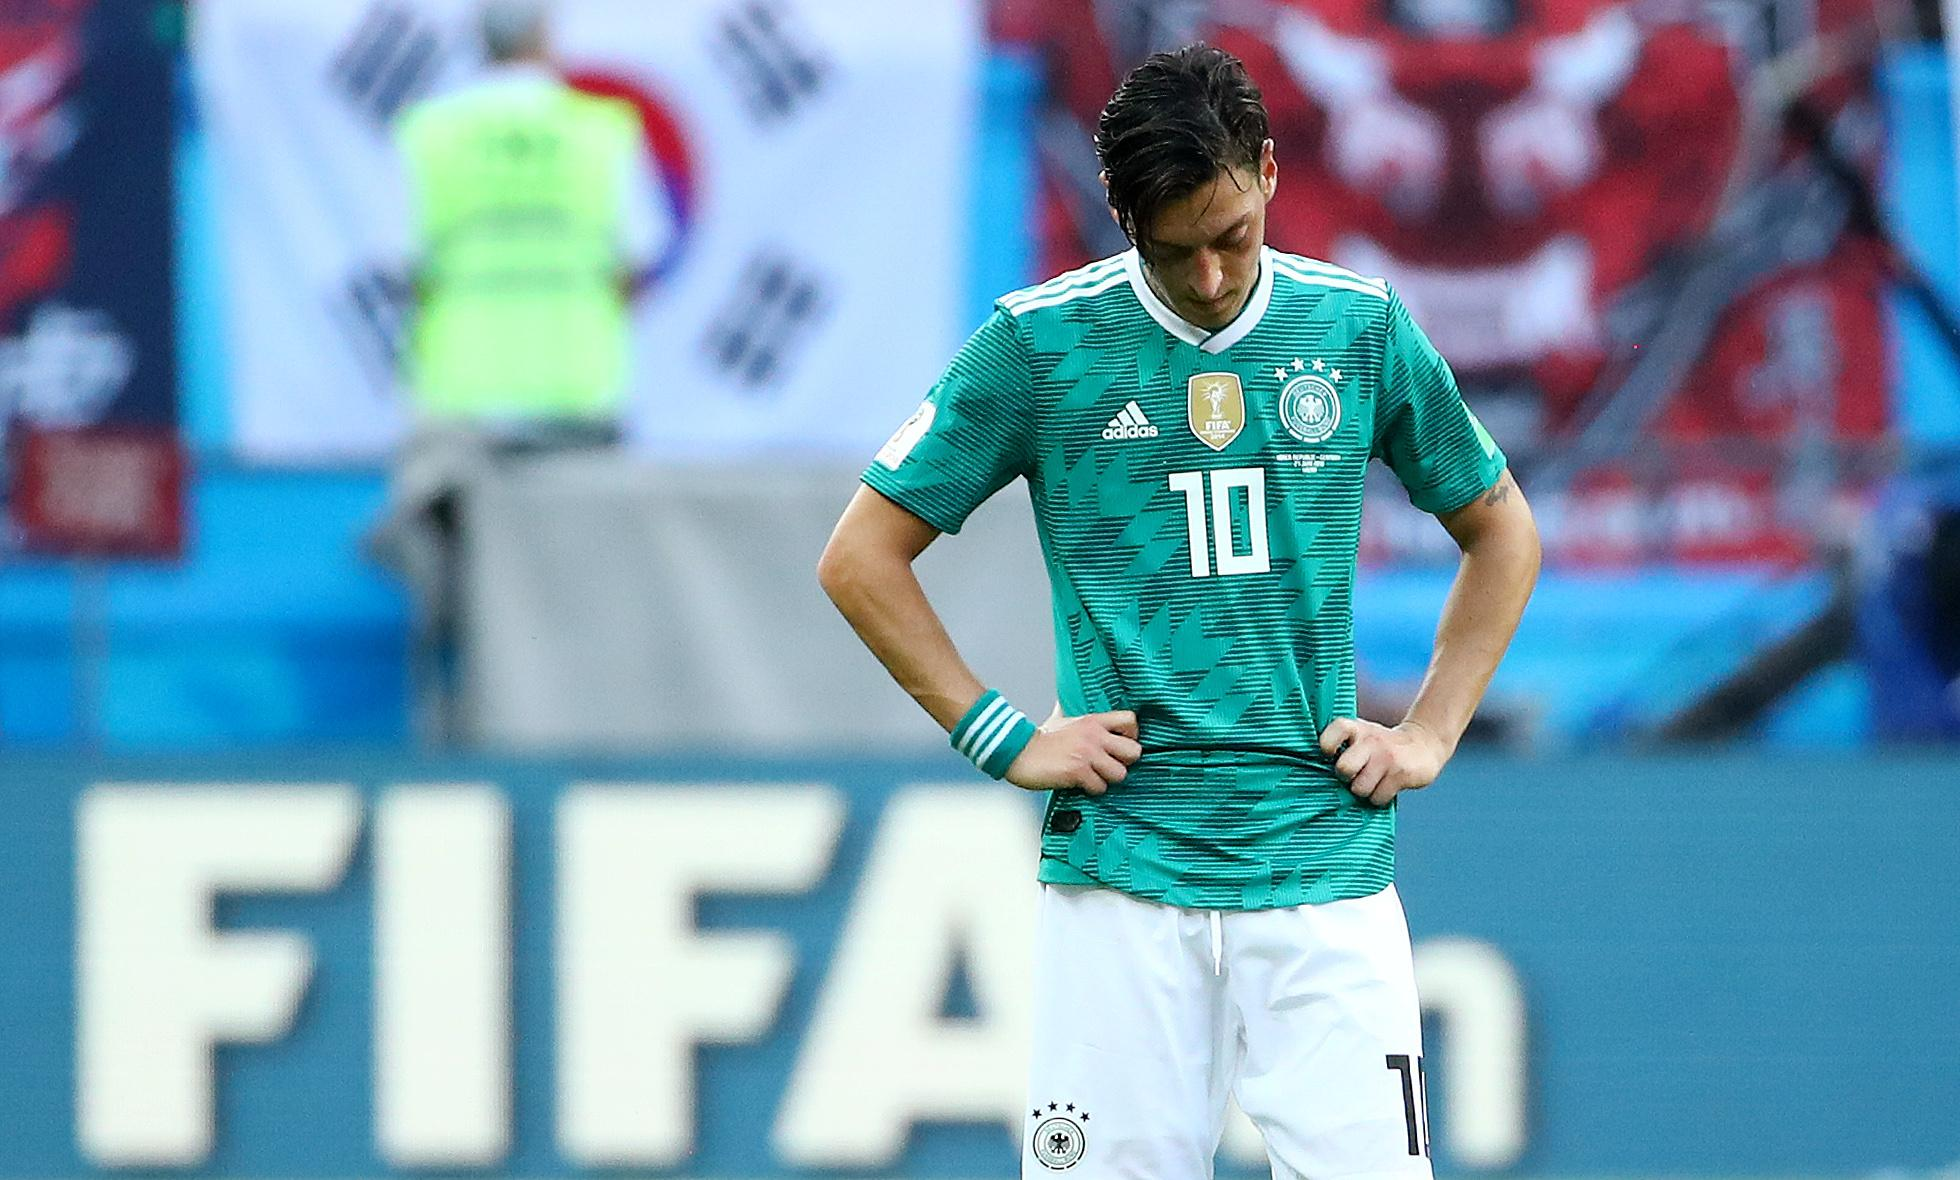 Soccer Football - World Cup - Group F - South Korea vs Germany - Kazan Arena, Kazan, Russia - June 27, 2018   Germany's Mesut Ozil looks dejected after the match    Michael Dalder